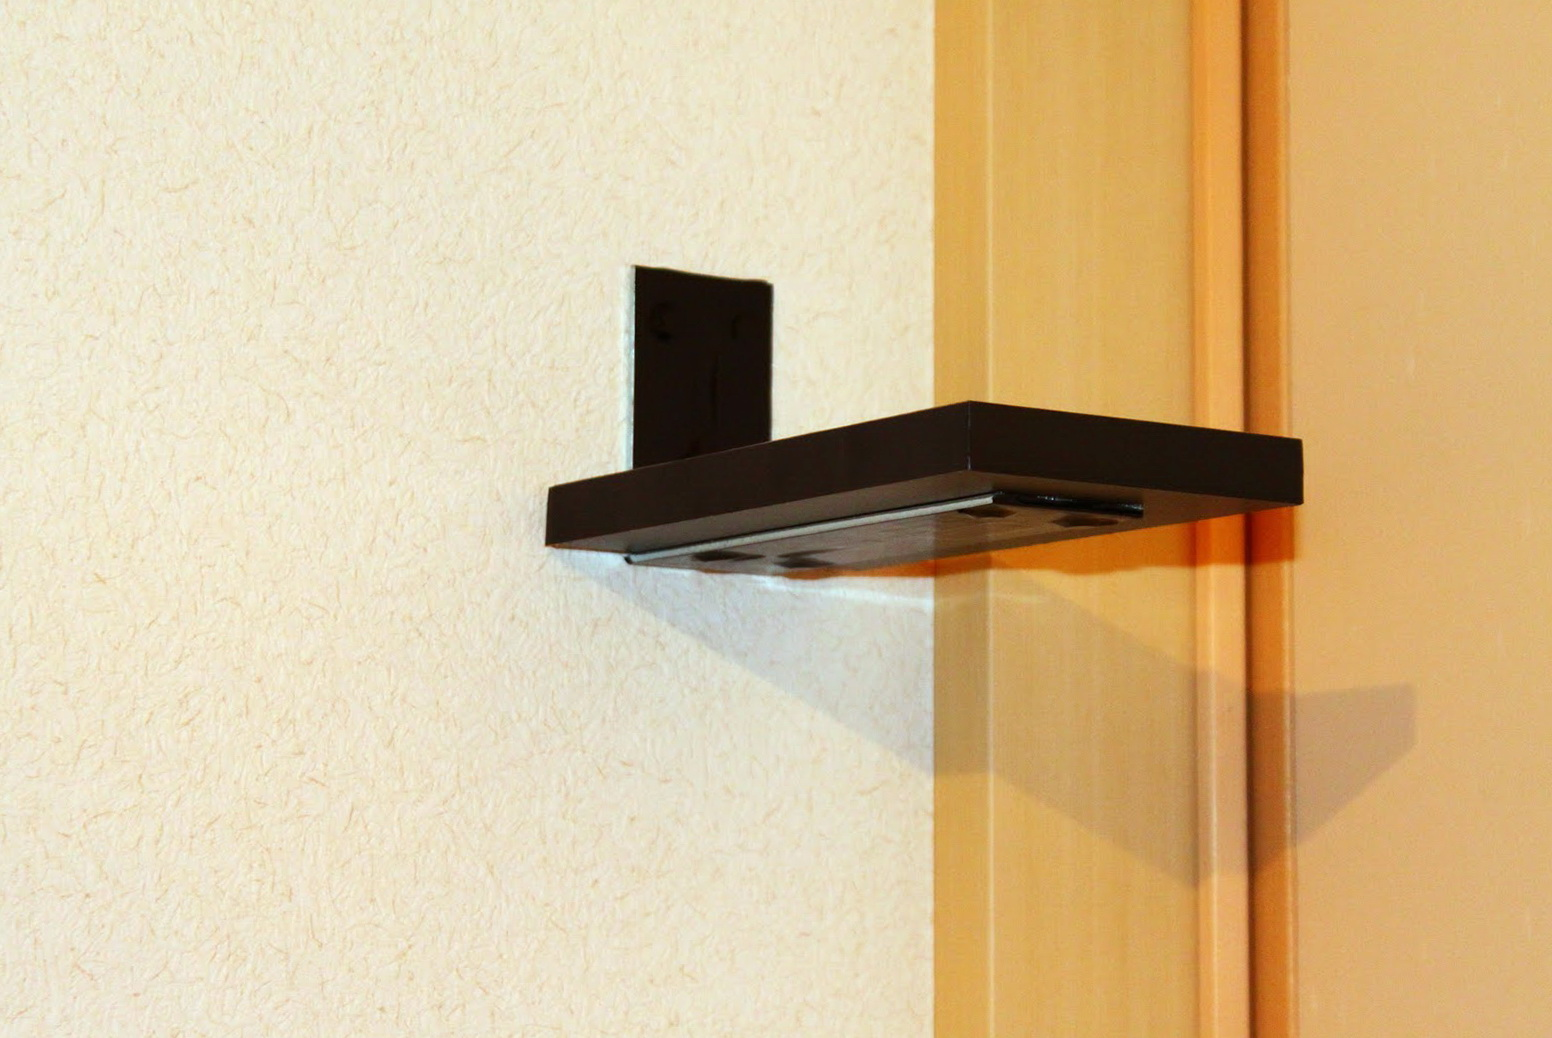 Small Wall Shelves For Speakers